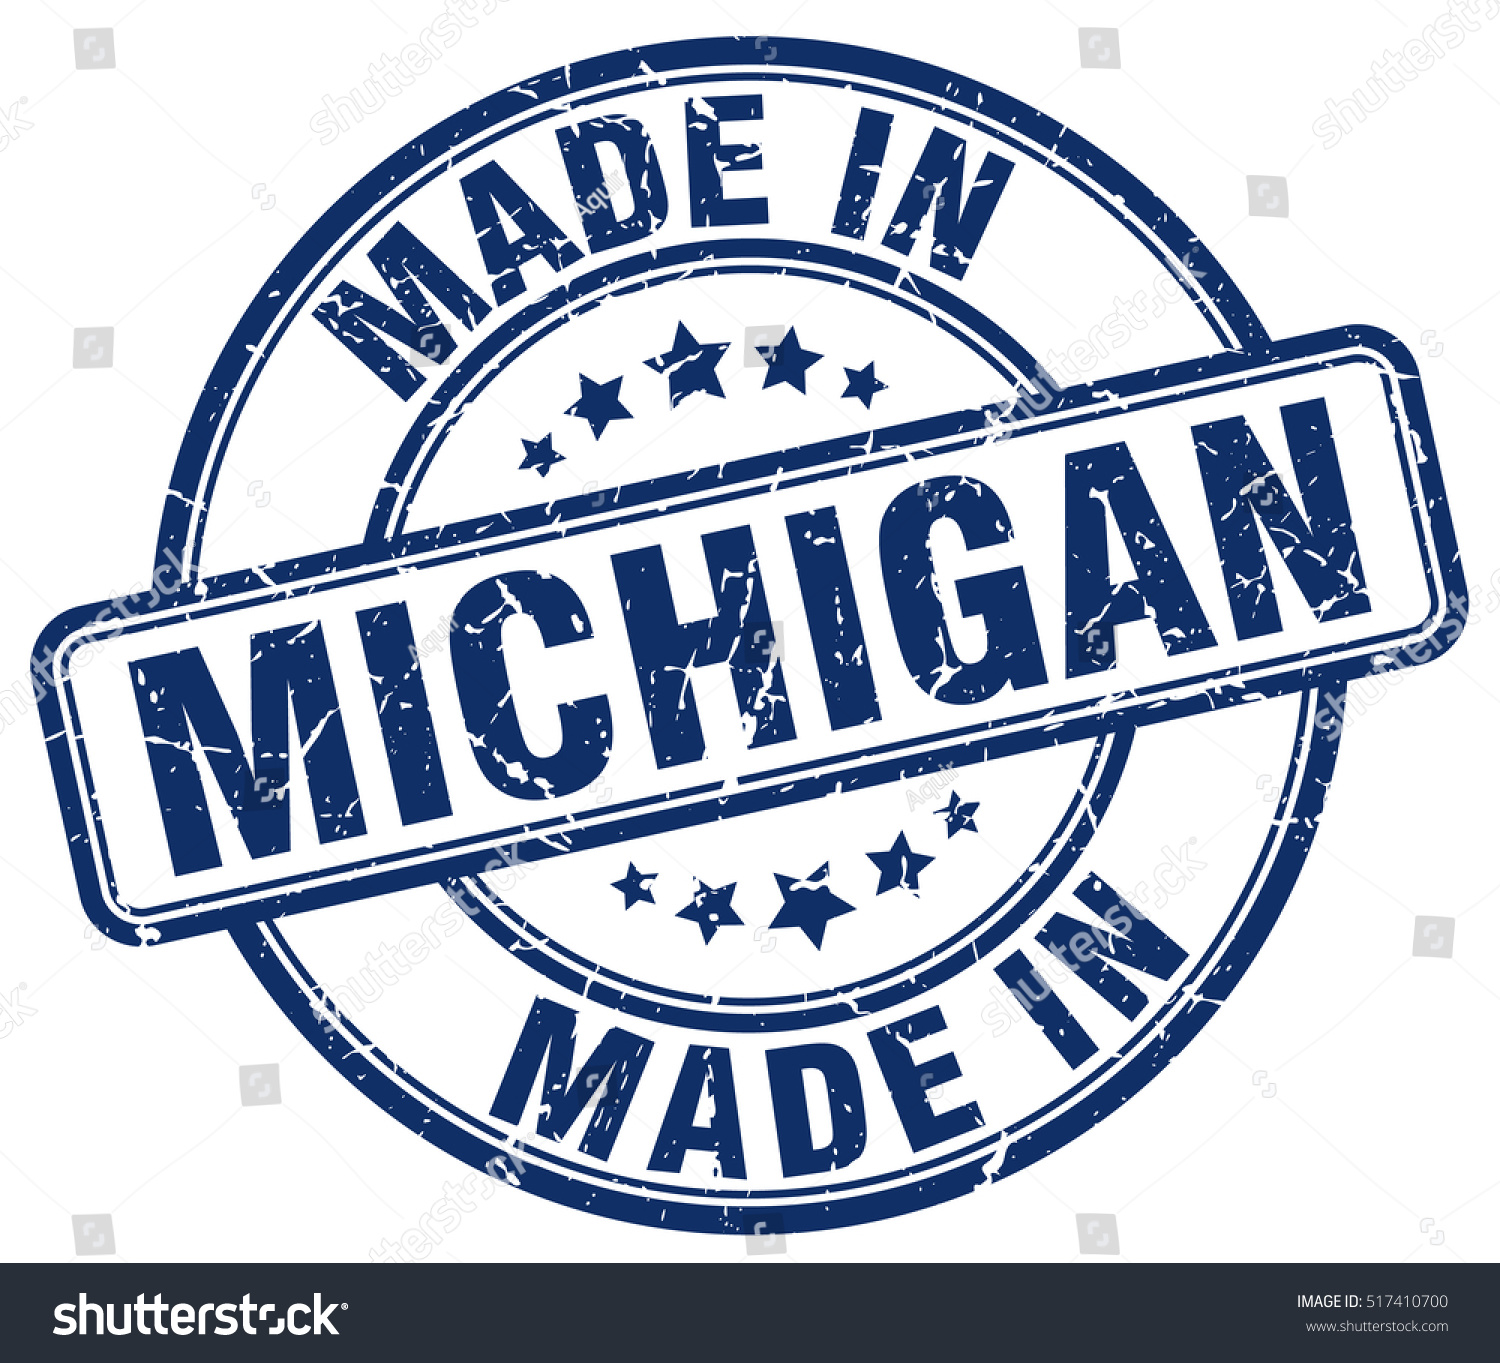 made michigan stamp stock vector 517410700 shutterstock. Black Bedroom Furniture Sets. Home Design Ideas